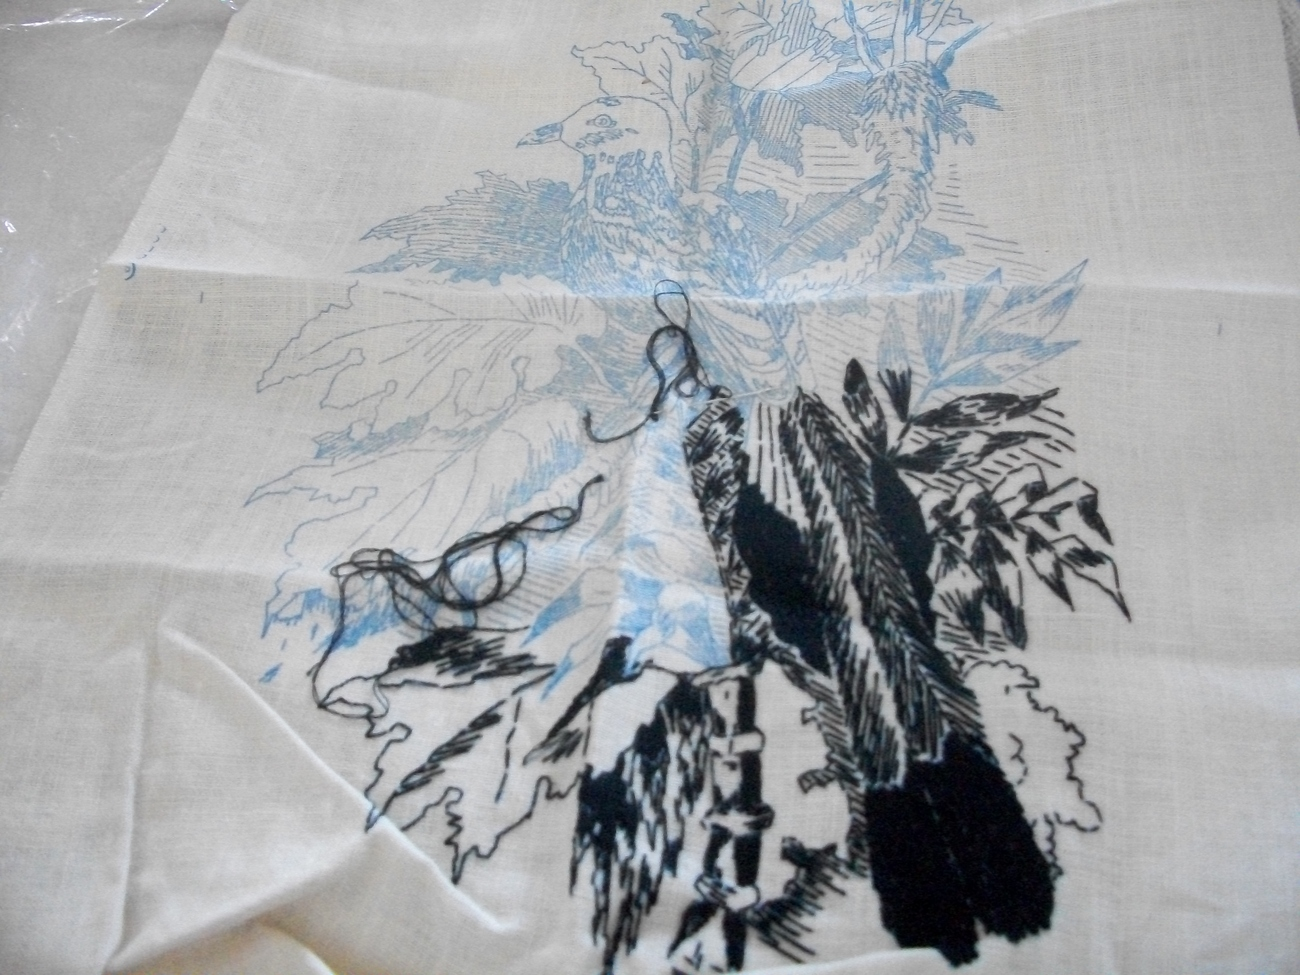 Tropical Bird Etching Embroidery Kit: Comes with Fabric, Floss & Directions